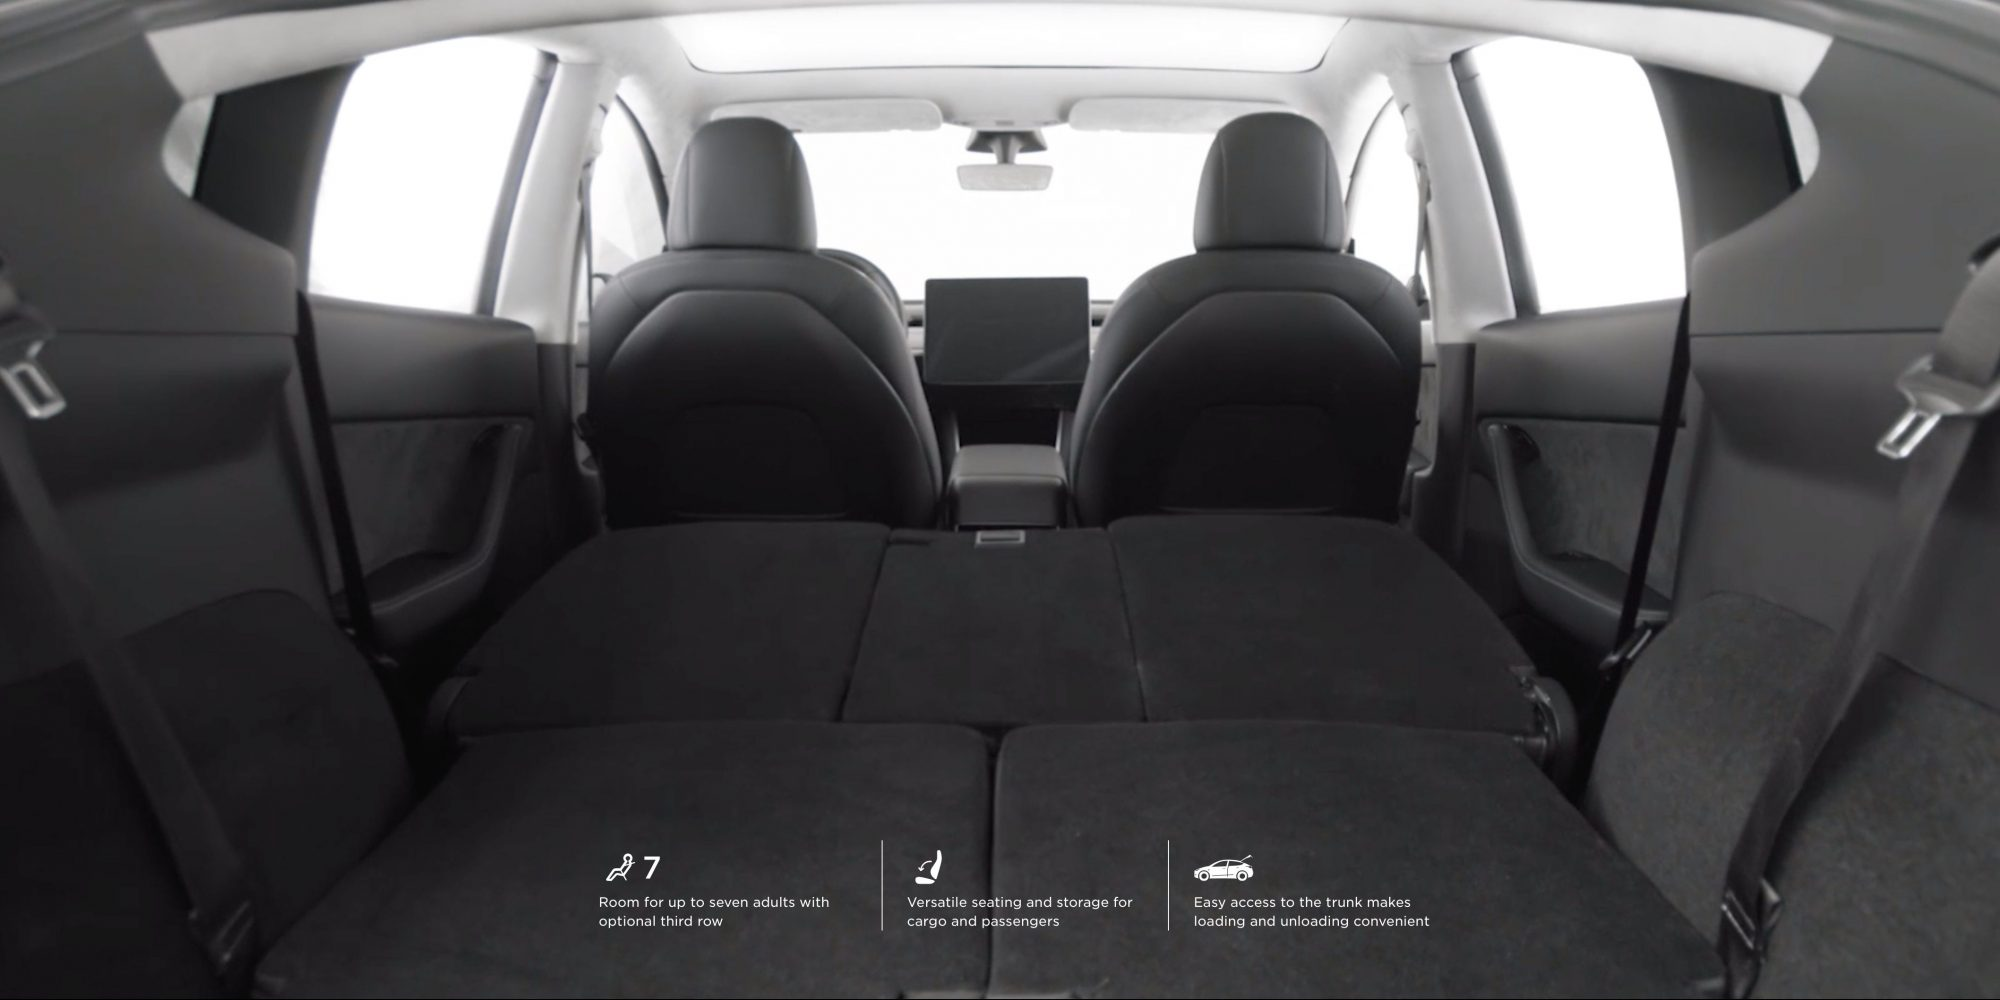 Pictures Surface Of Tesla Model Y Third Row Seats And They Don T Look Large Electrek